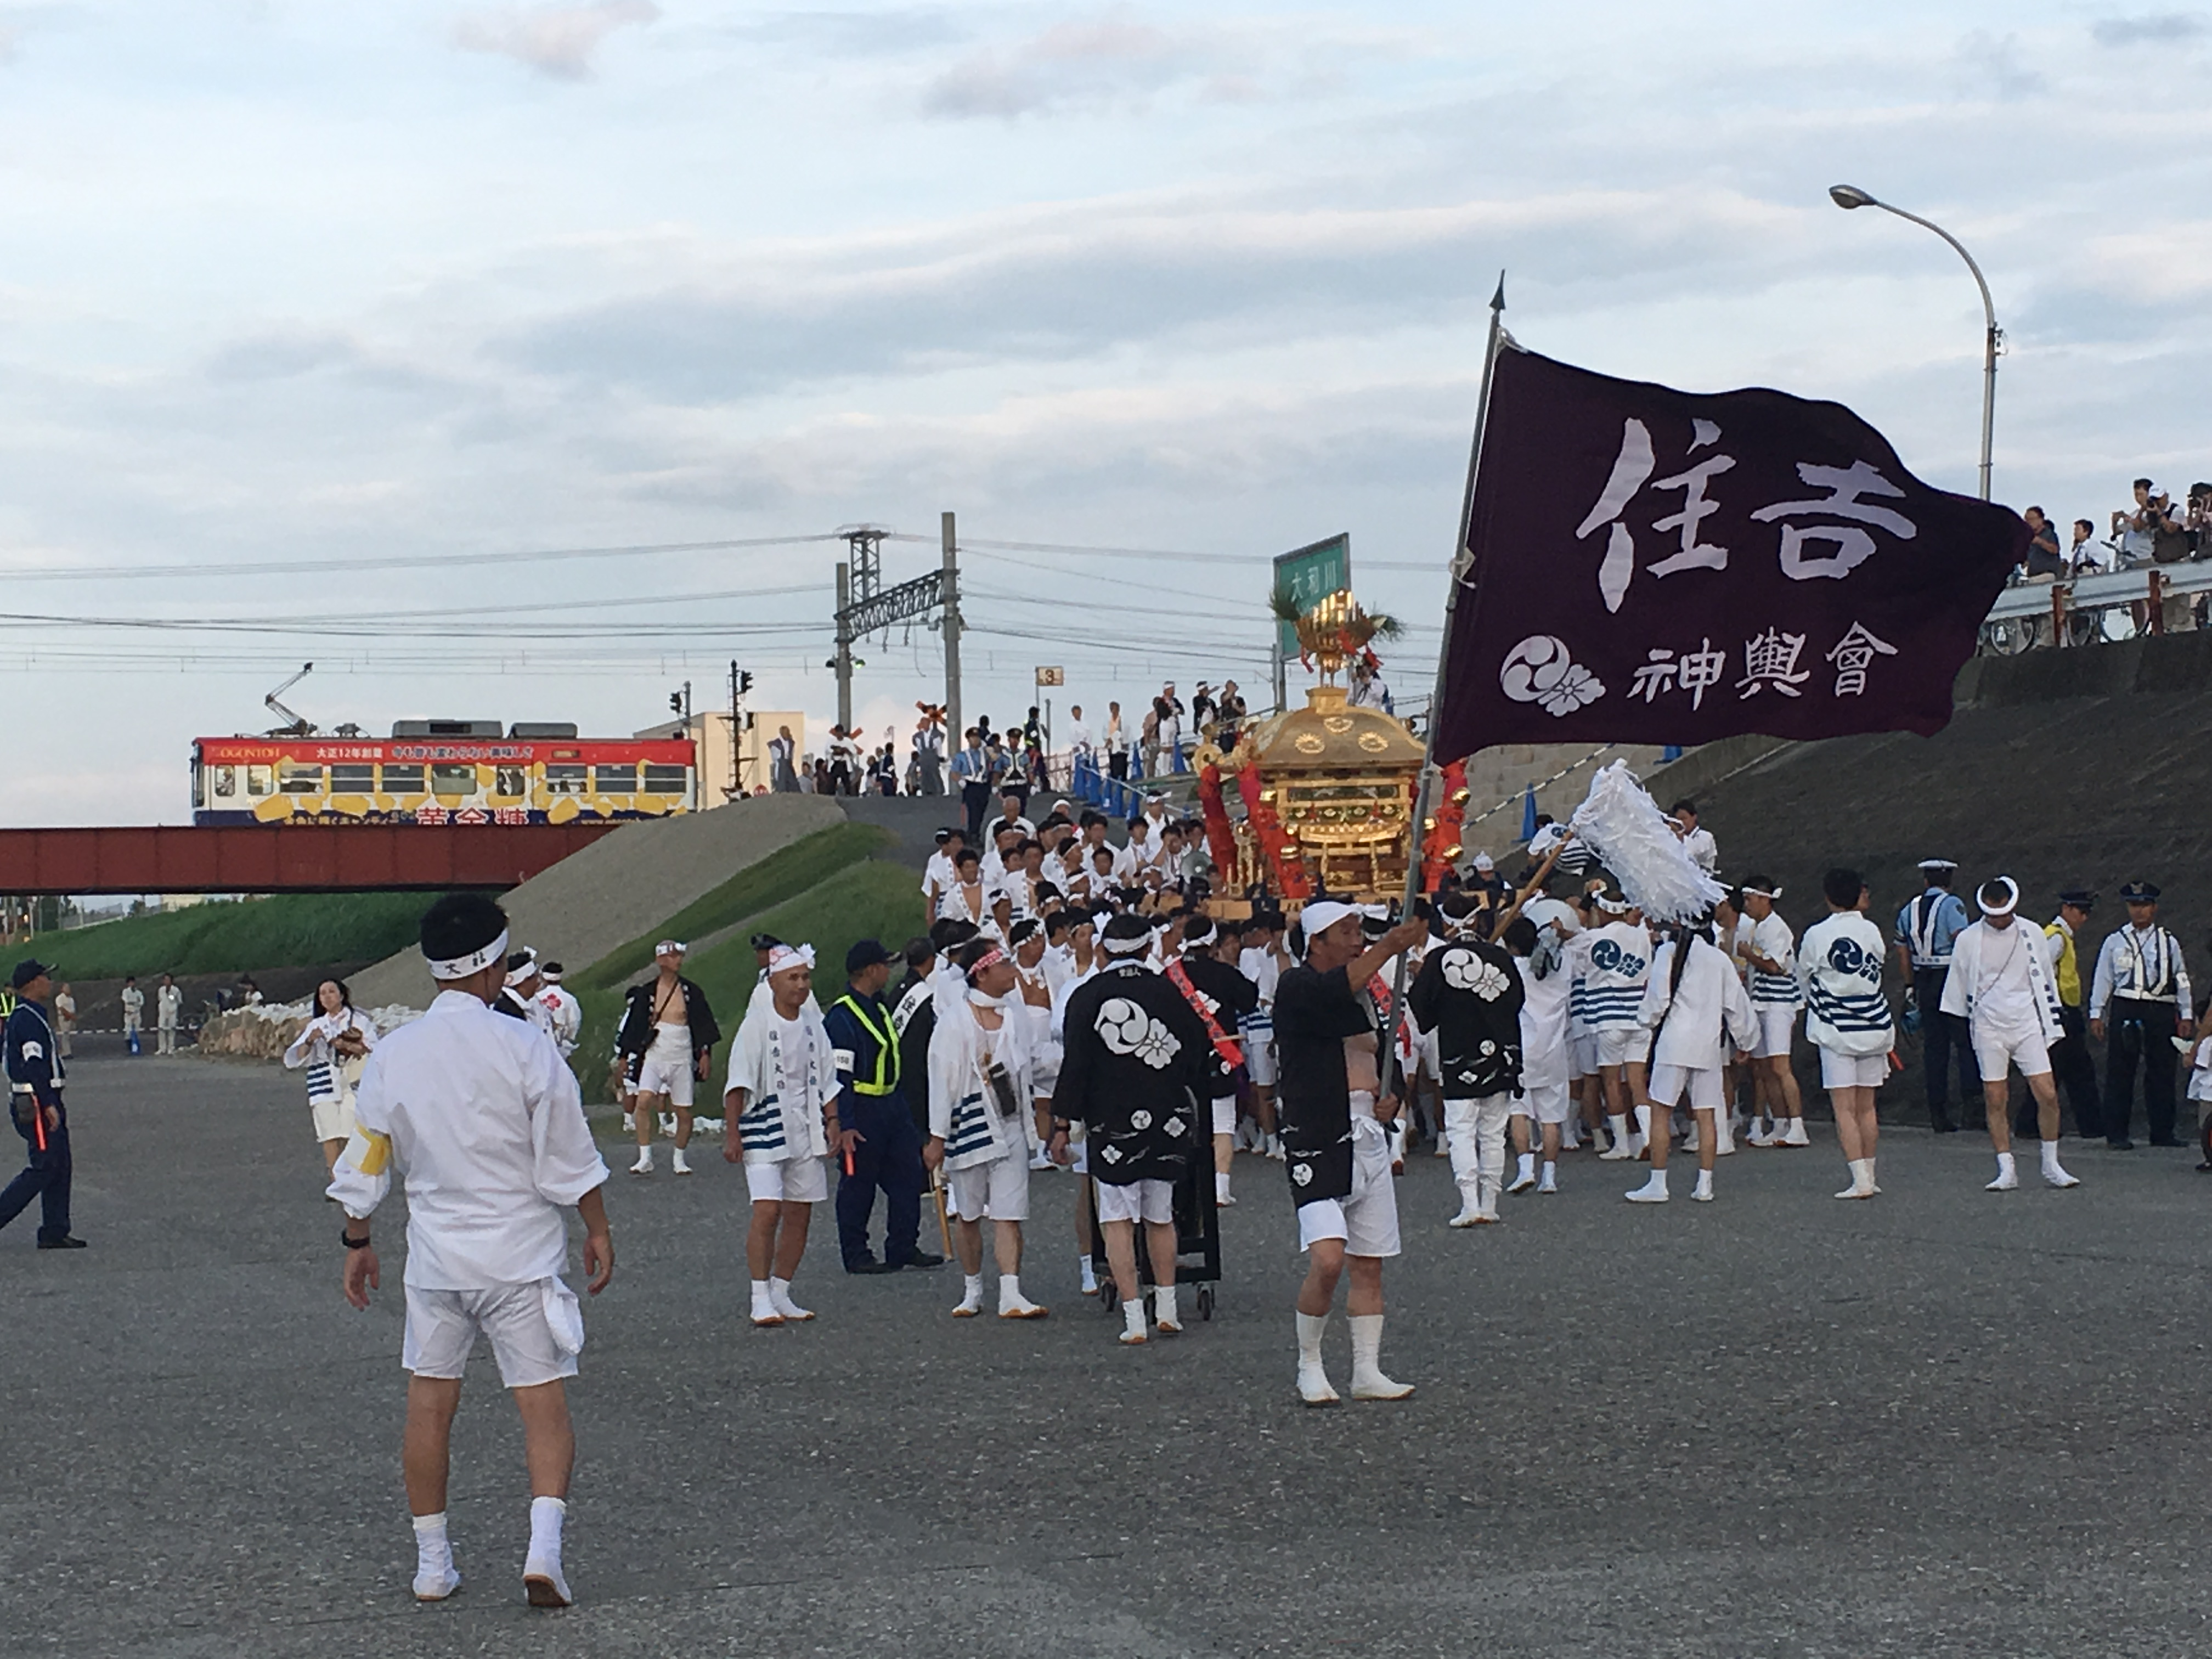 Sumiyoshi Matsuri participants meeting along the river side as a train passes in the distance